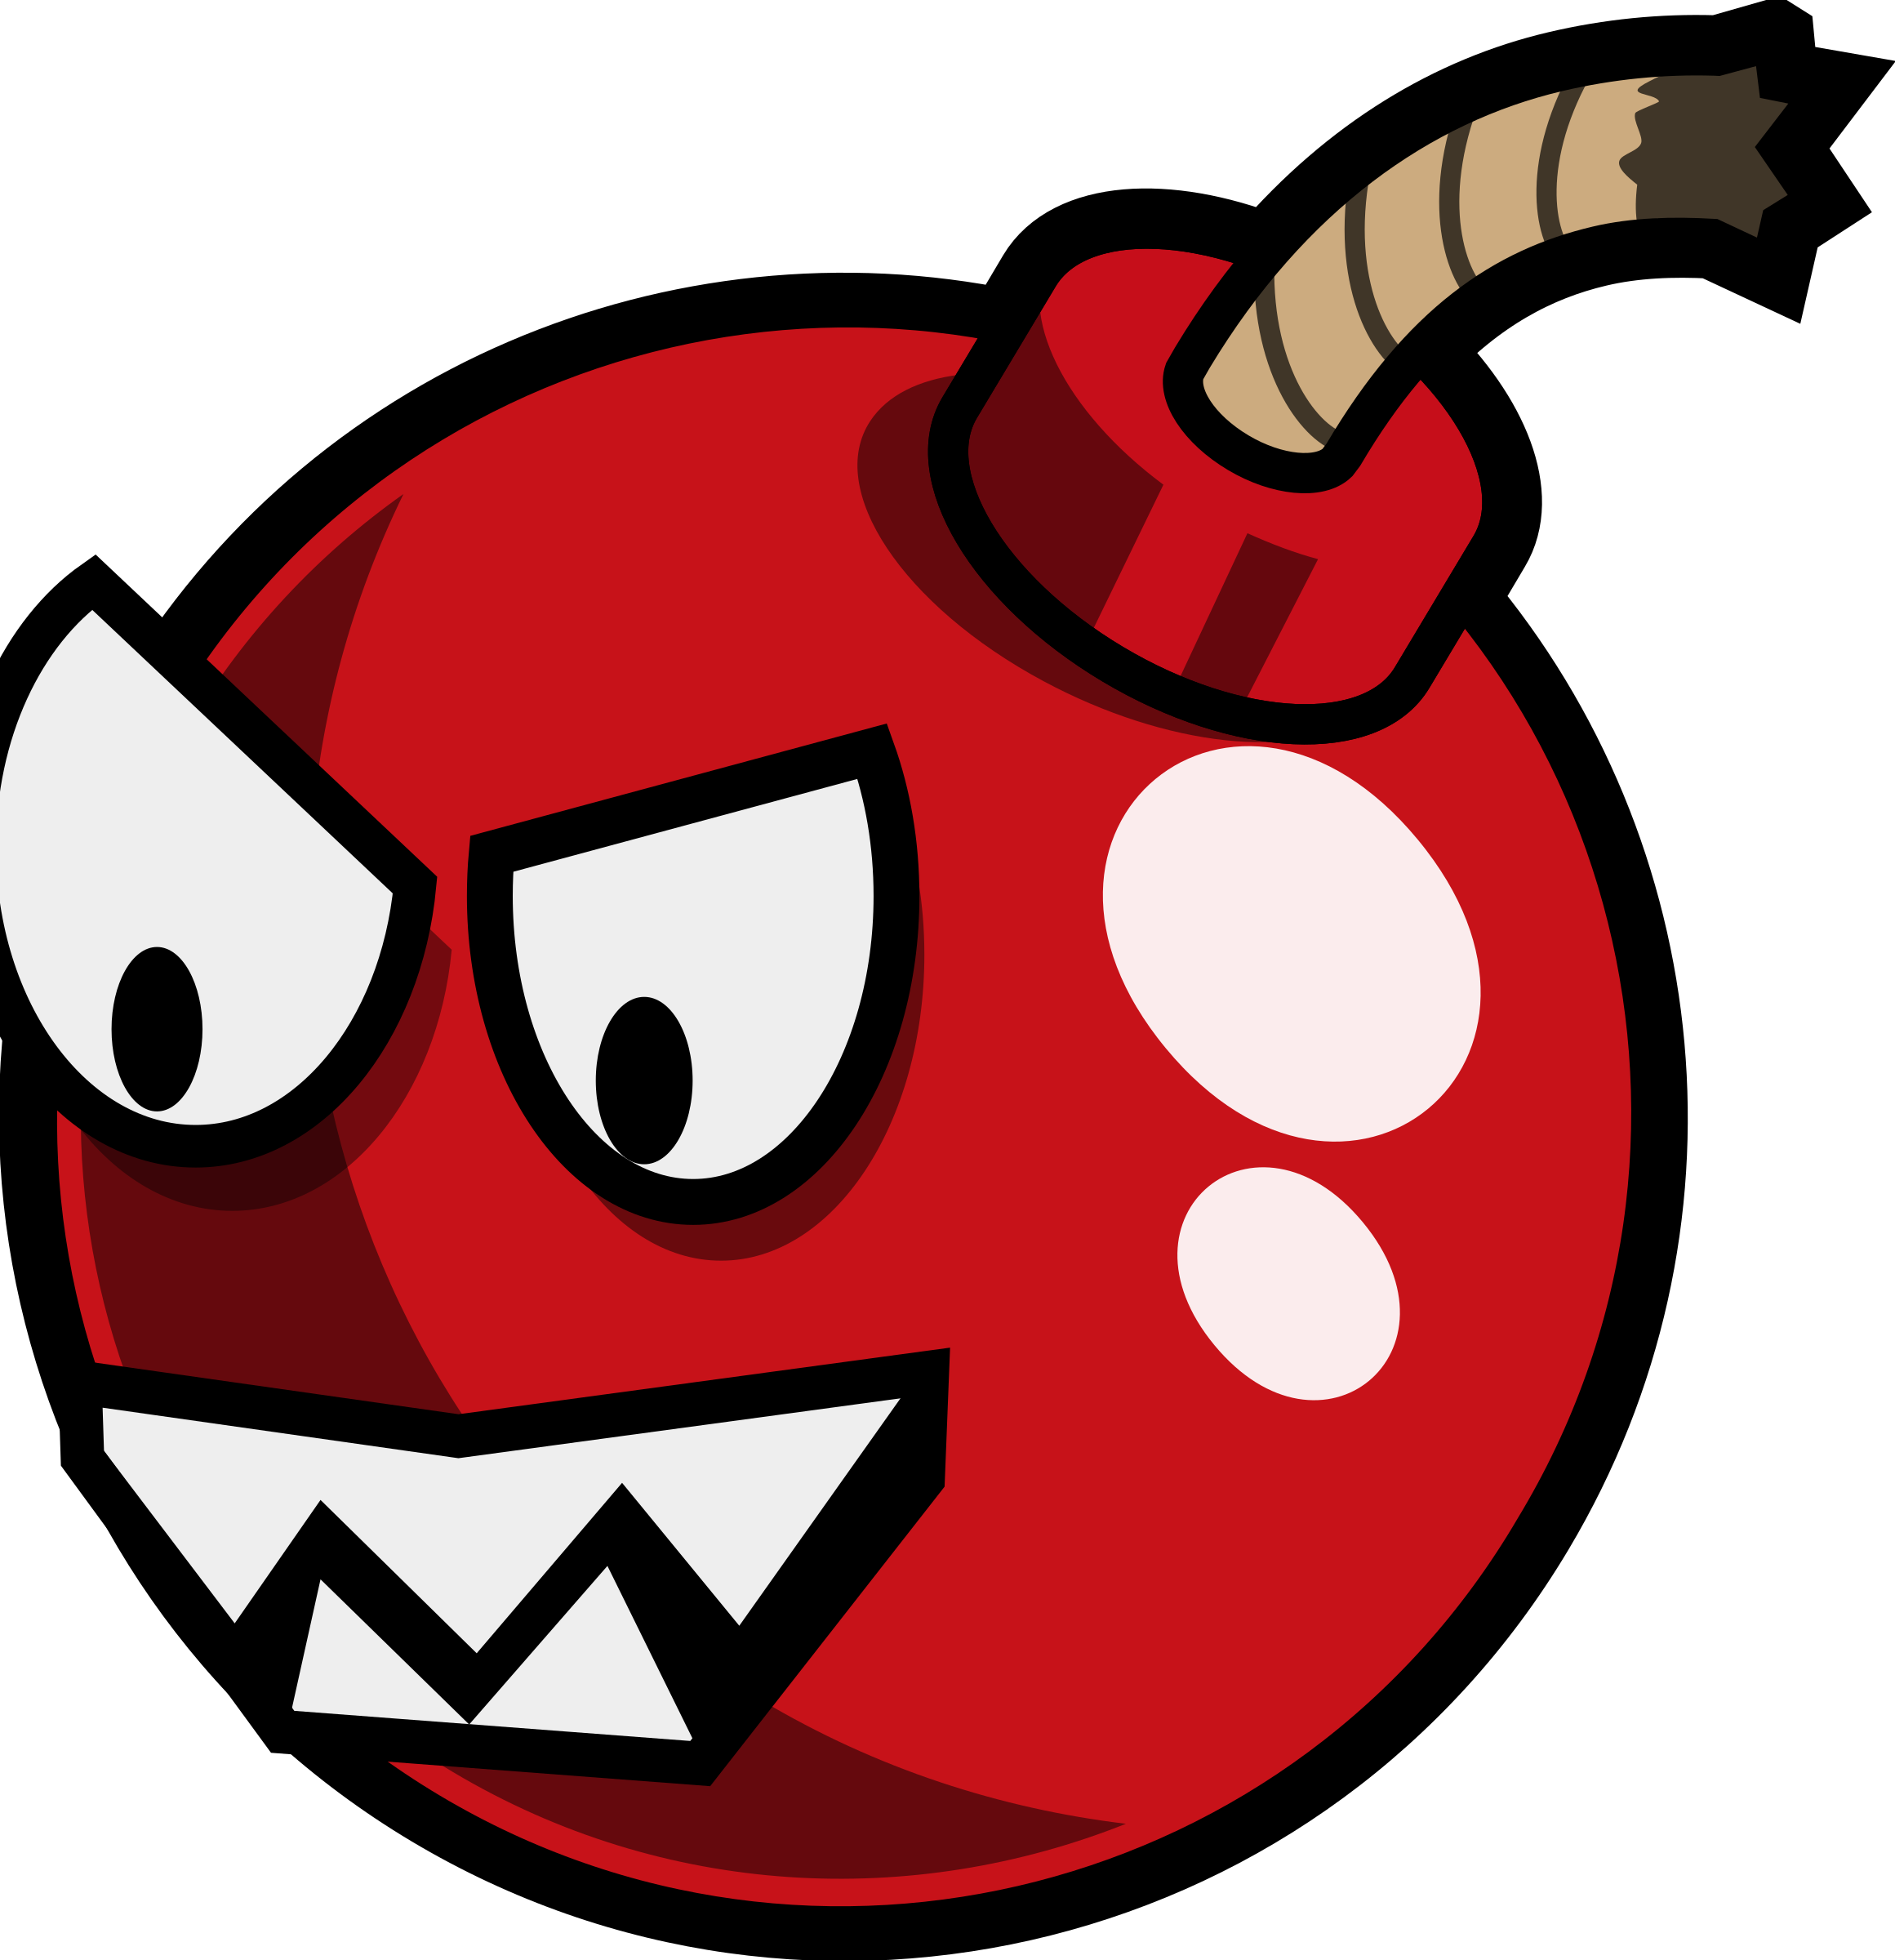 Cartoon Cherry Bomb enemy Remix by monsterbraingames